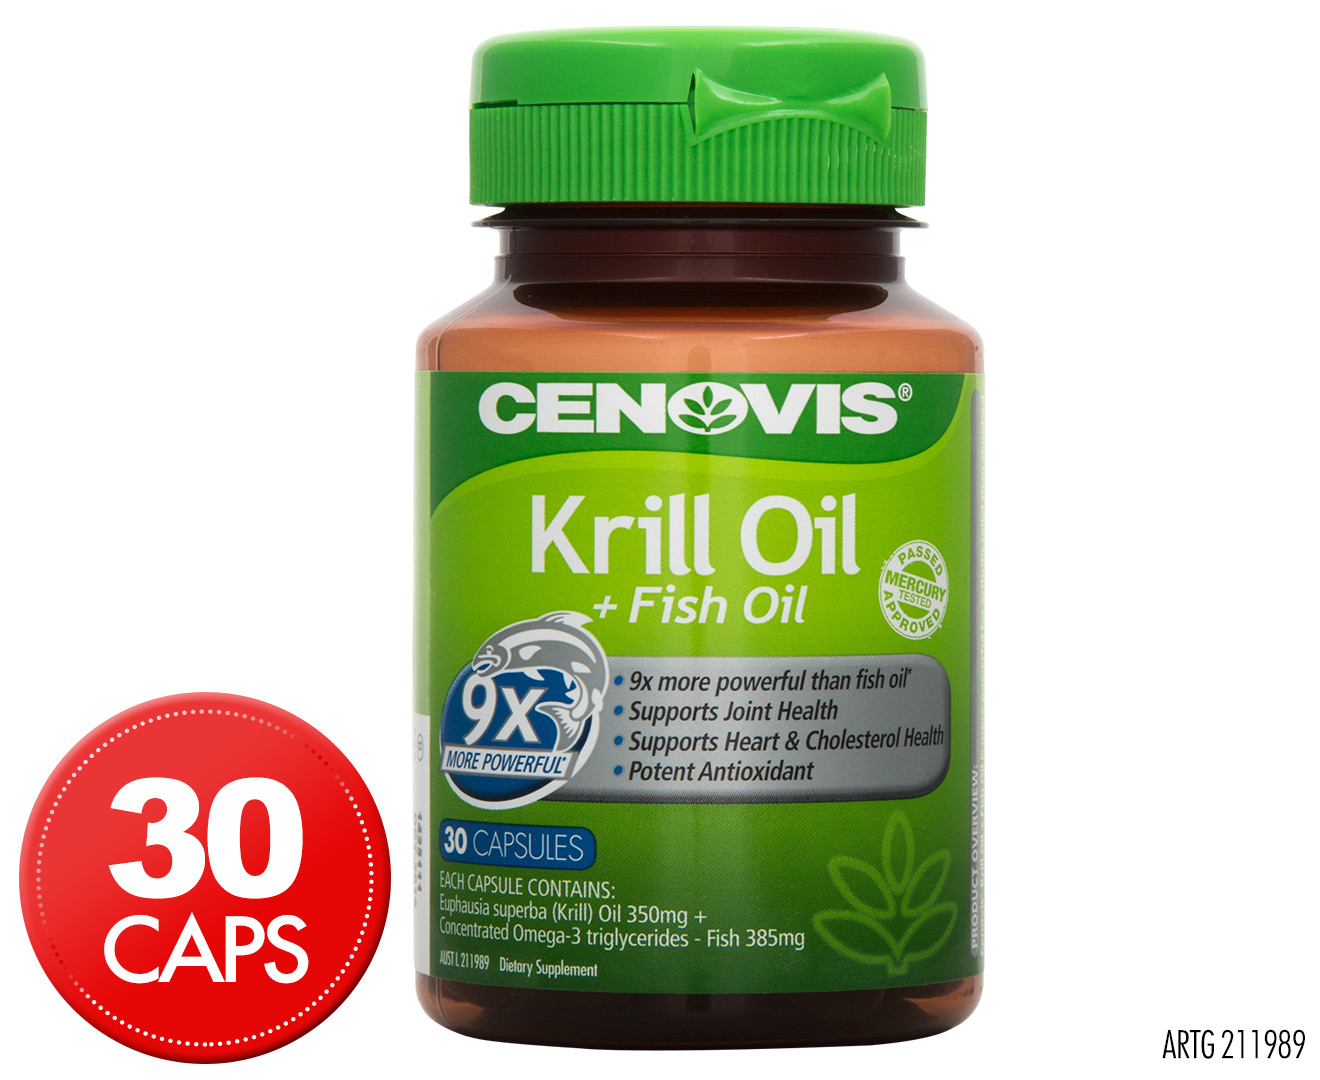 Cenovis krill oil fish oil 30 caps for Fish oil and arthritis